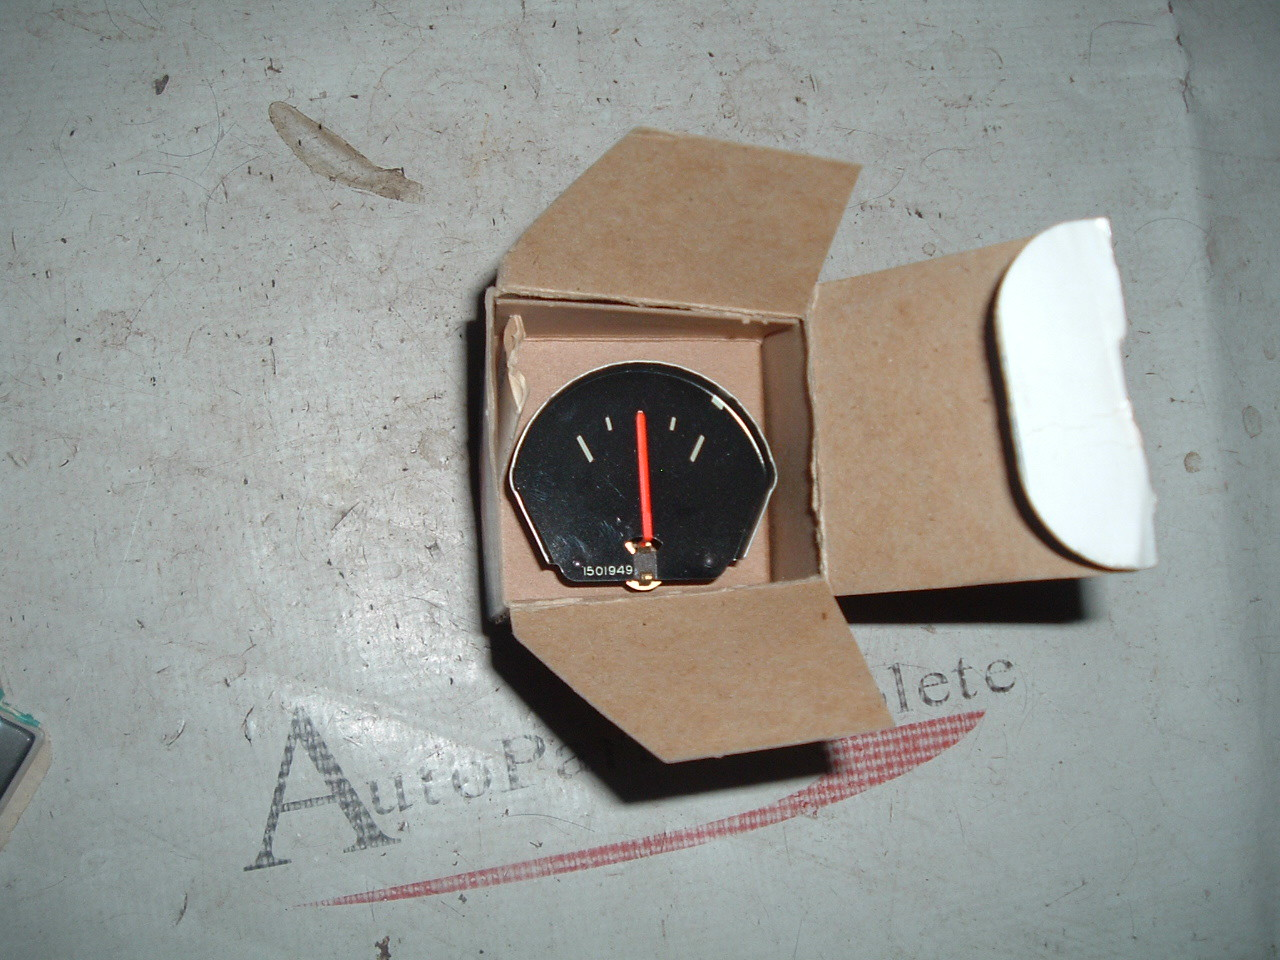 1961 62 62 Chevrolet truck ammeter gauge – unit NOS GM #1501949 (z 1501949)